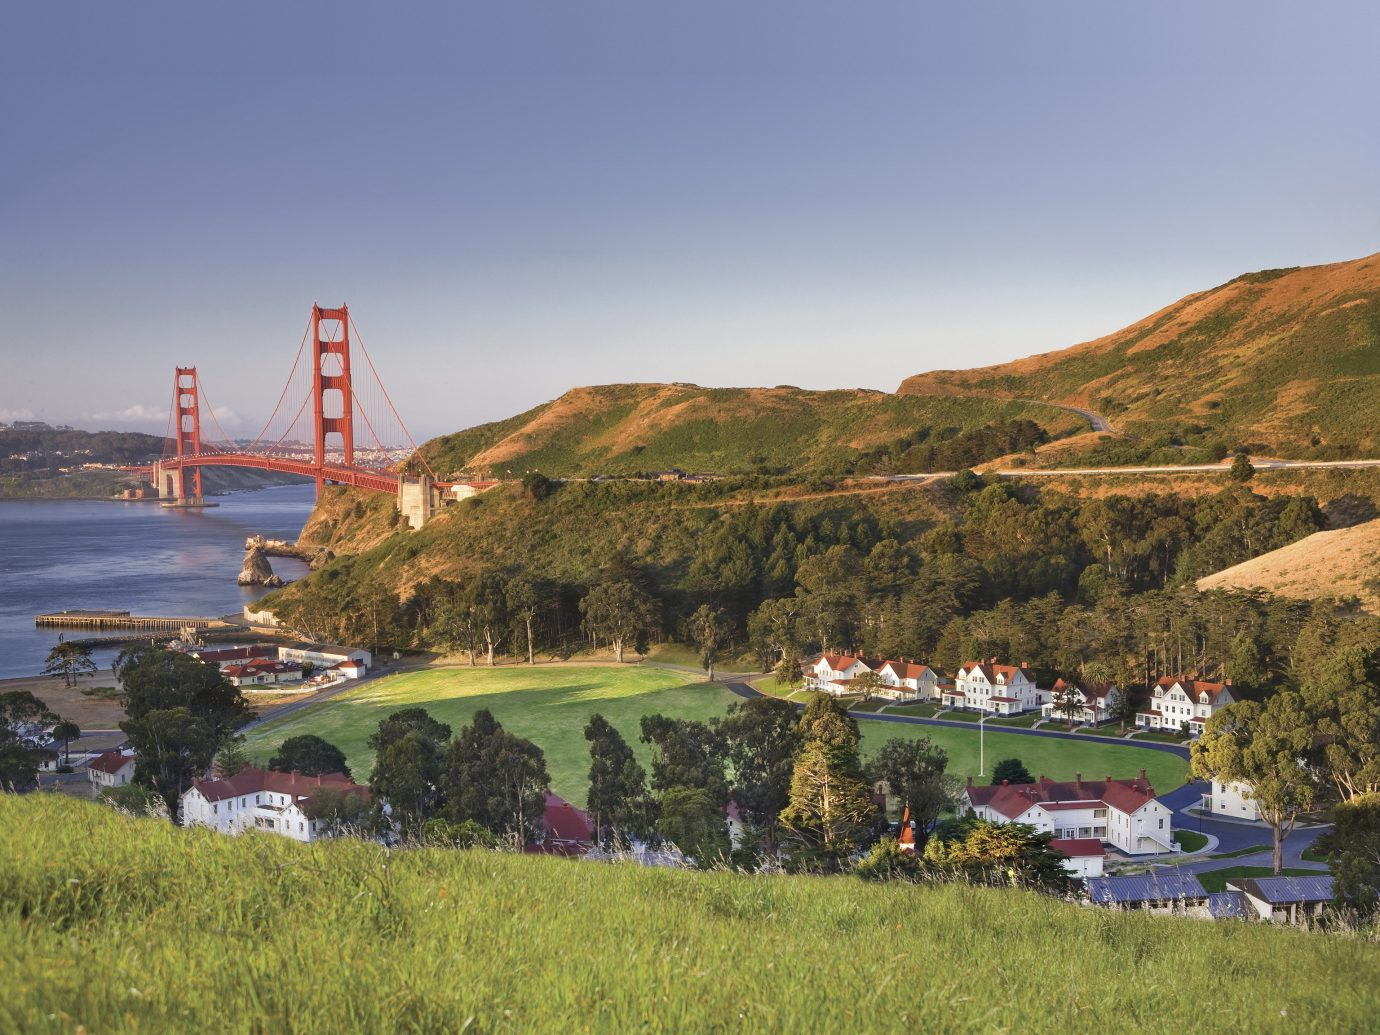 Cavallo Point, Golden Gate Bridge National Park